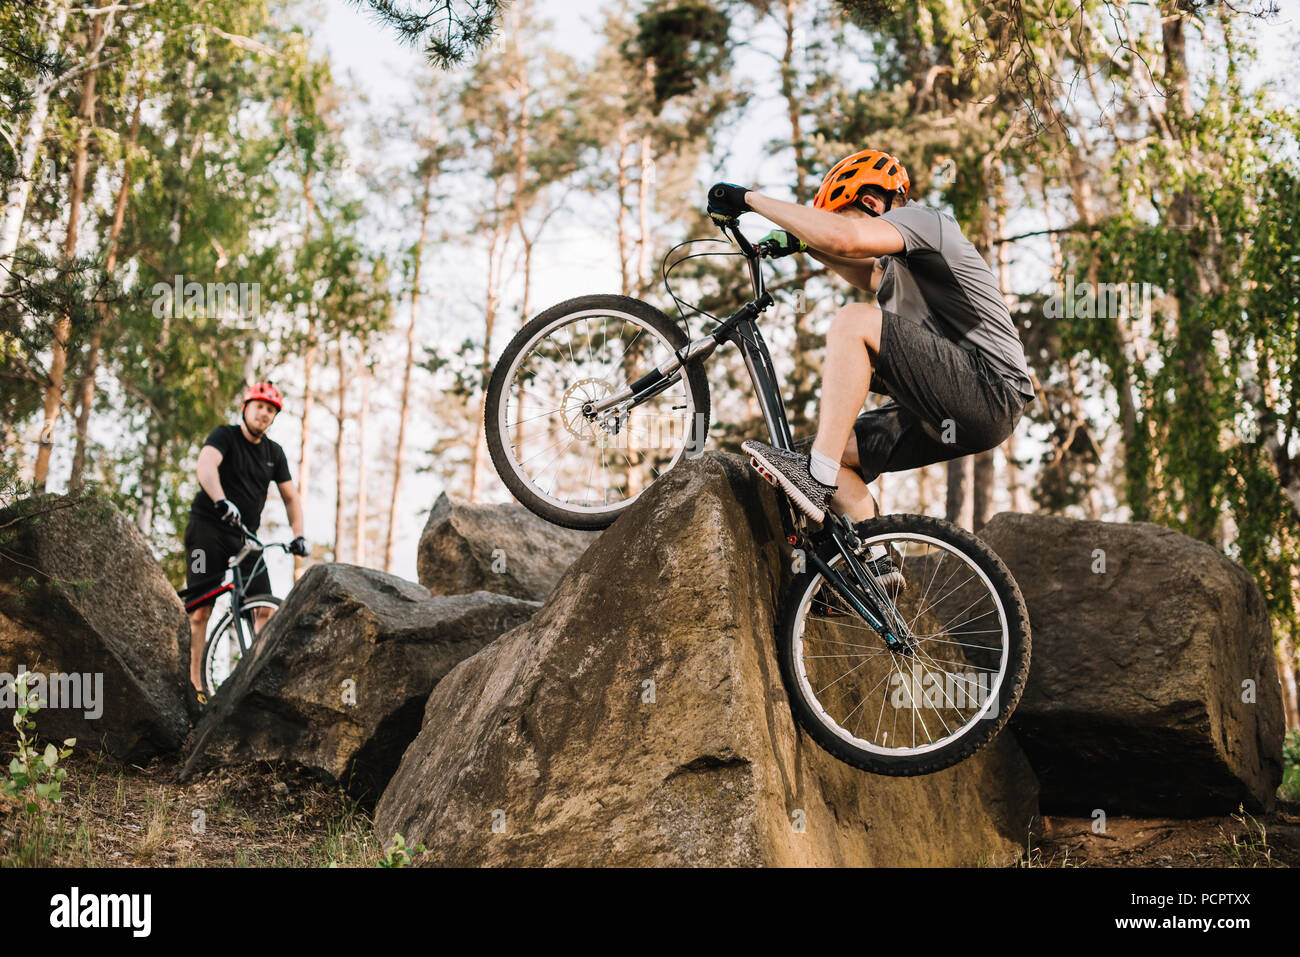 extreme trial bikers riding on rocks outdoors - Stock Image